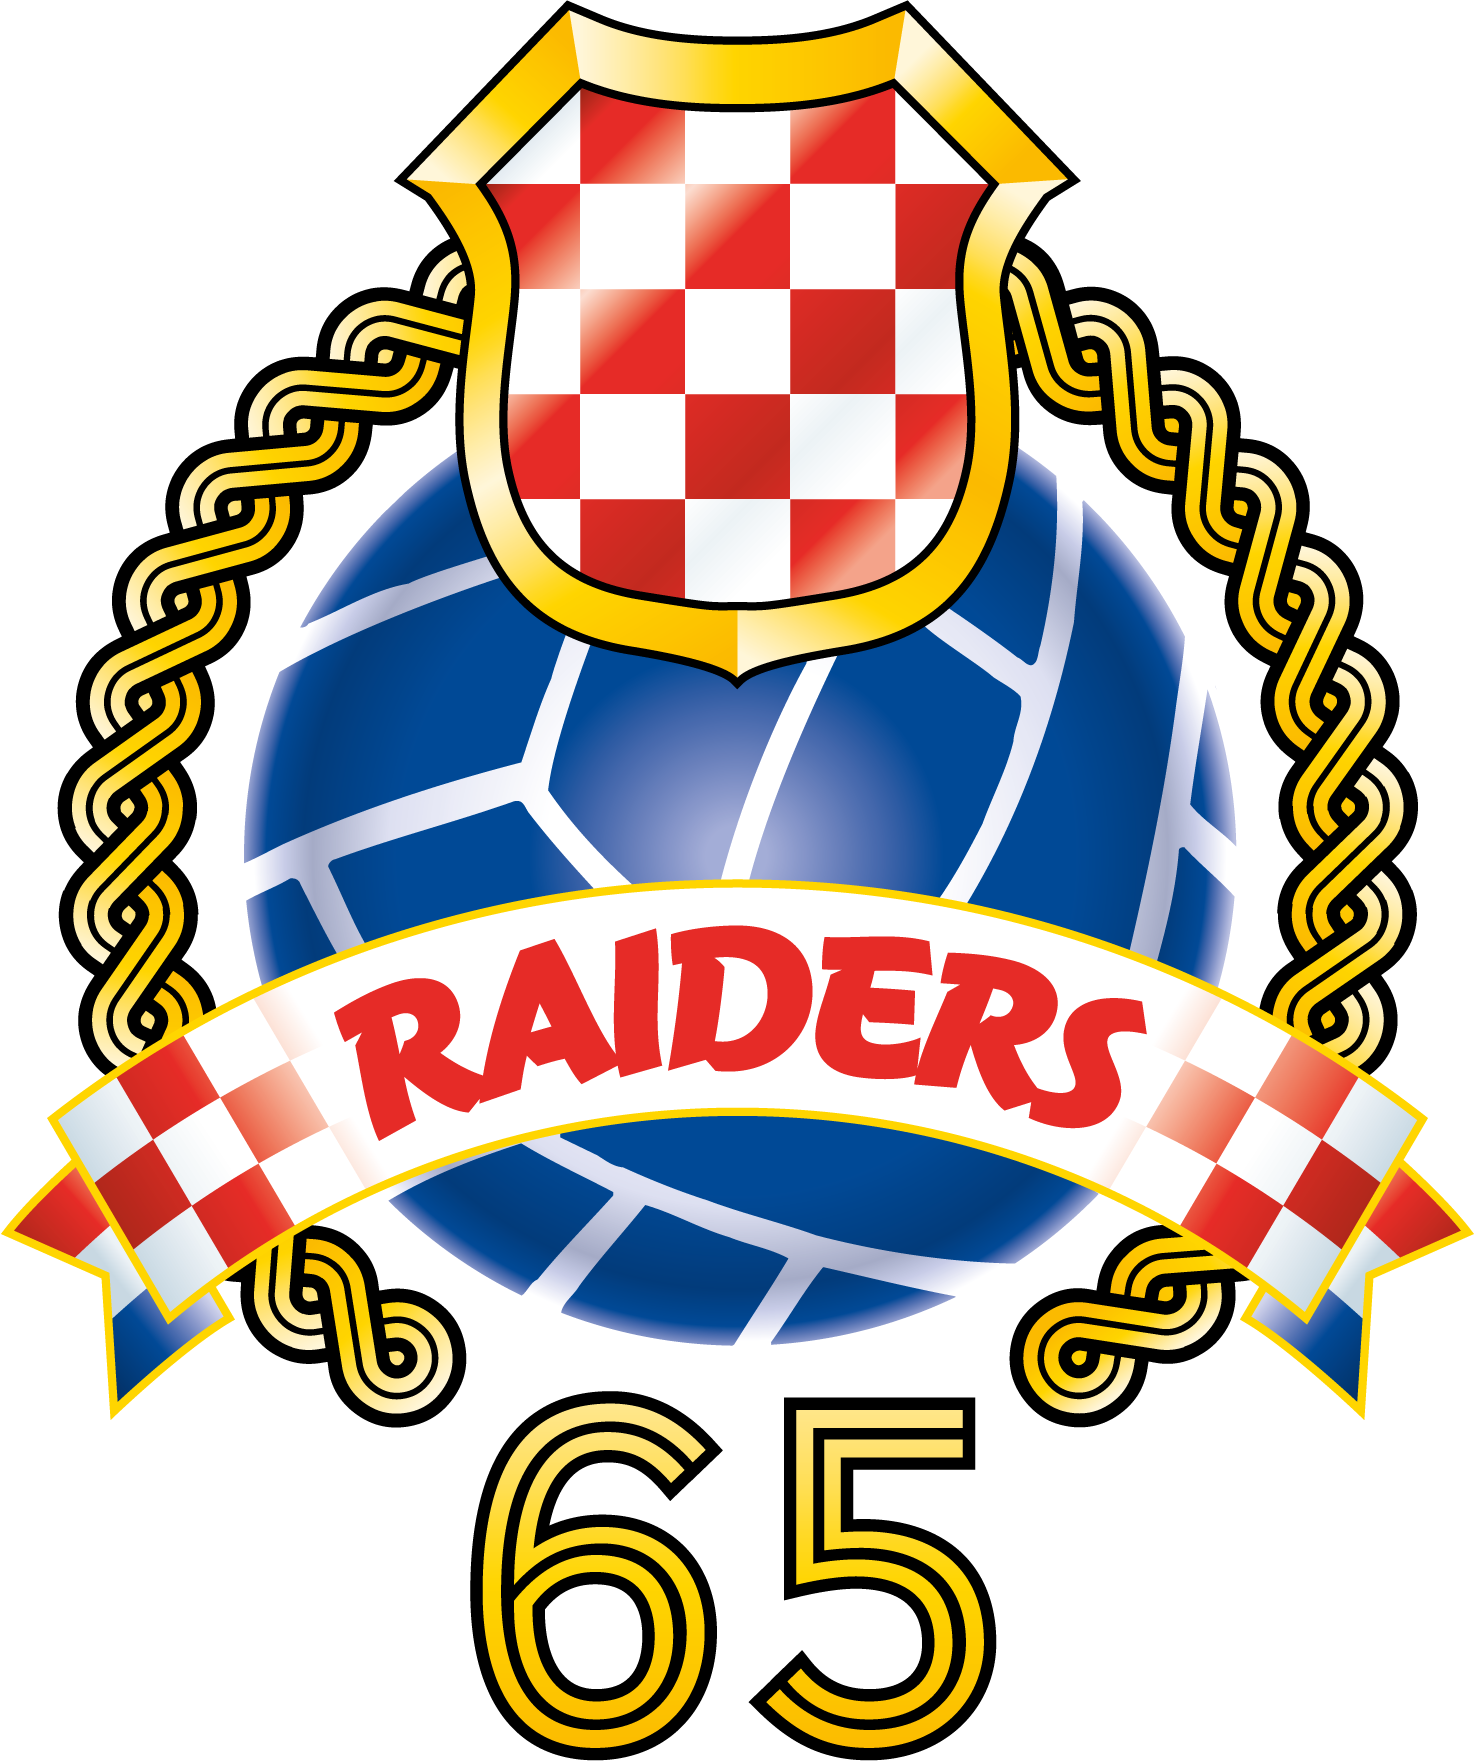 Adelaide Croatia Raiders Soccer Club